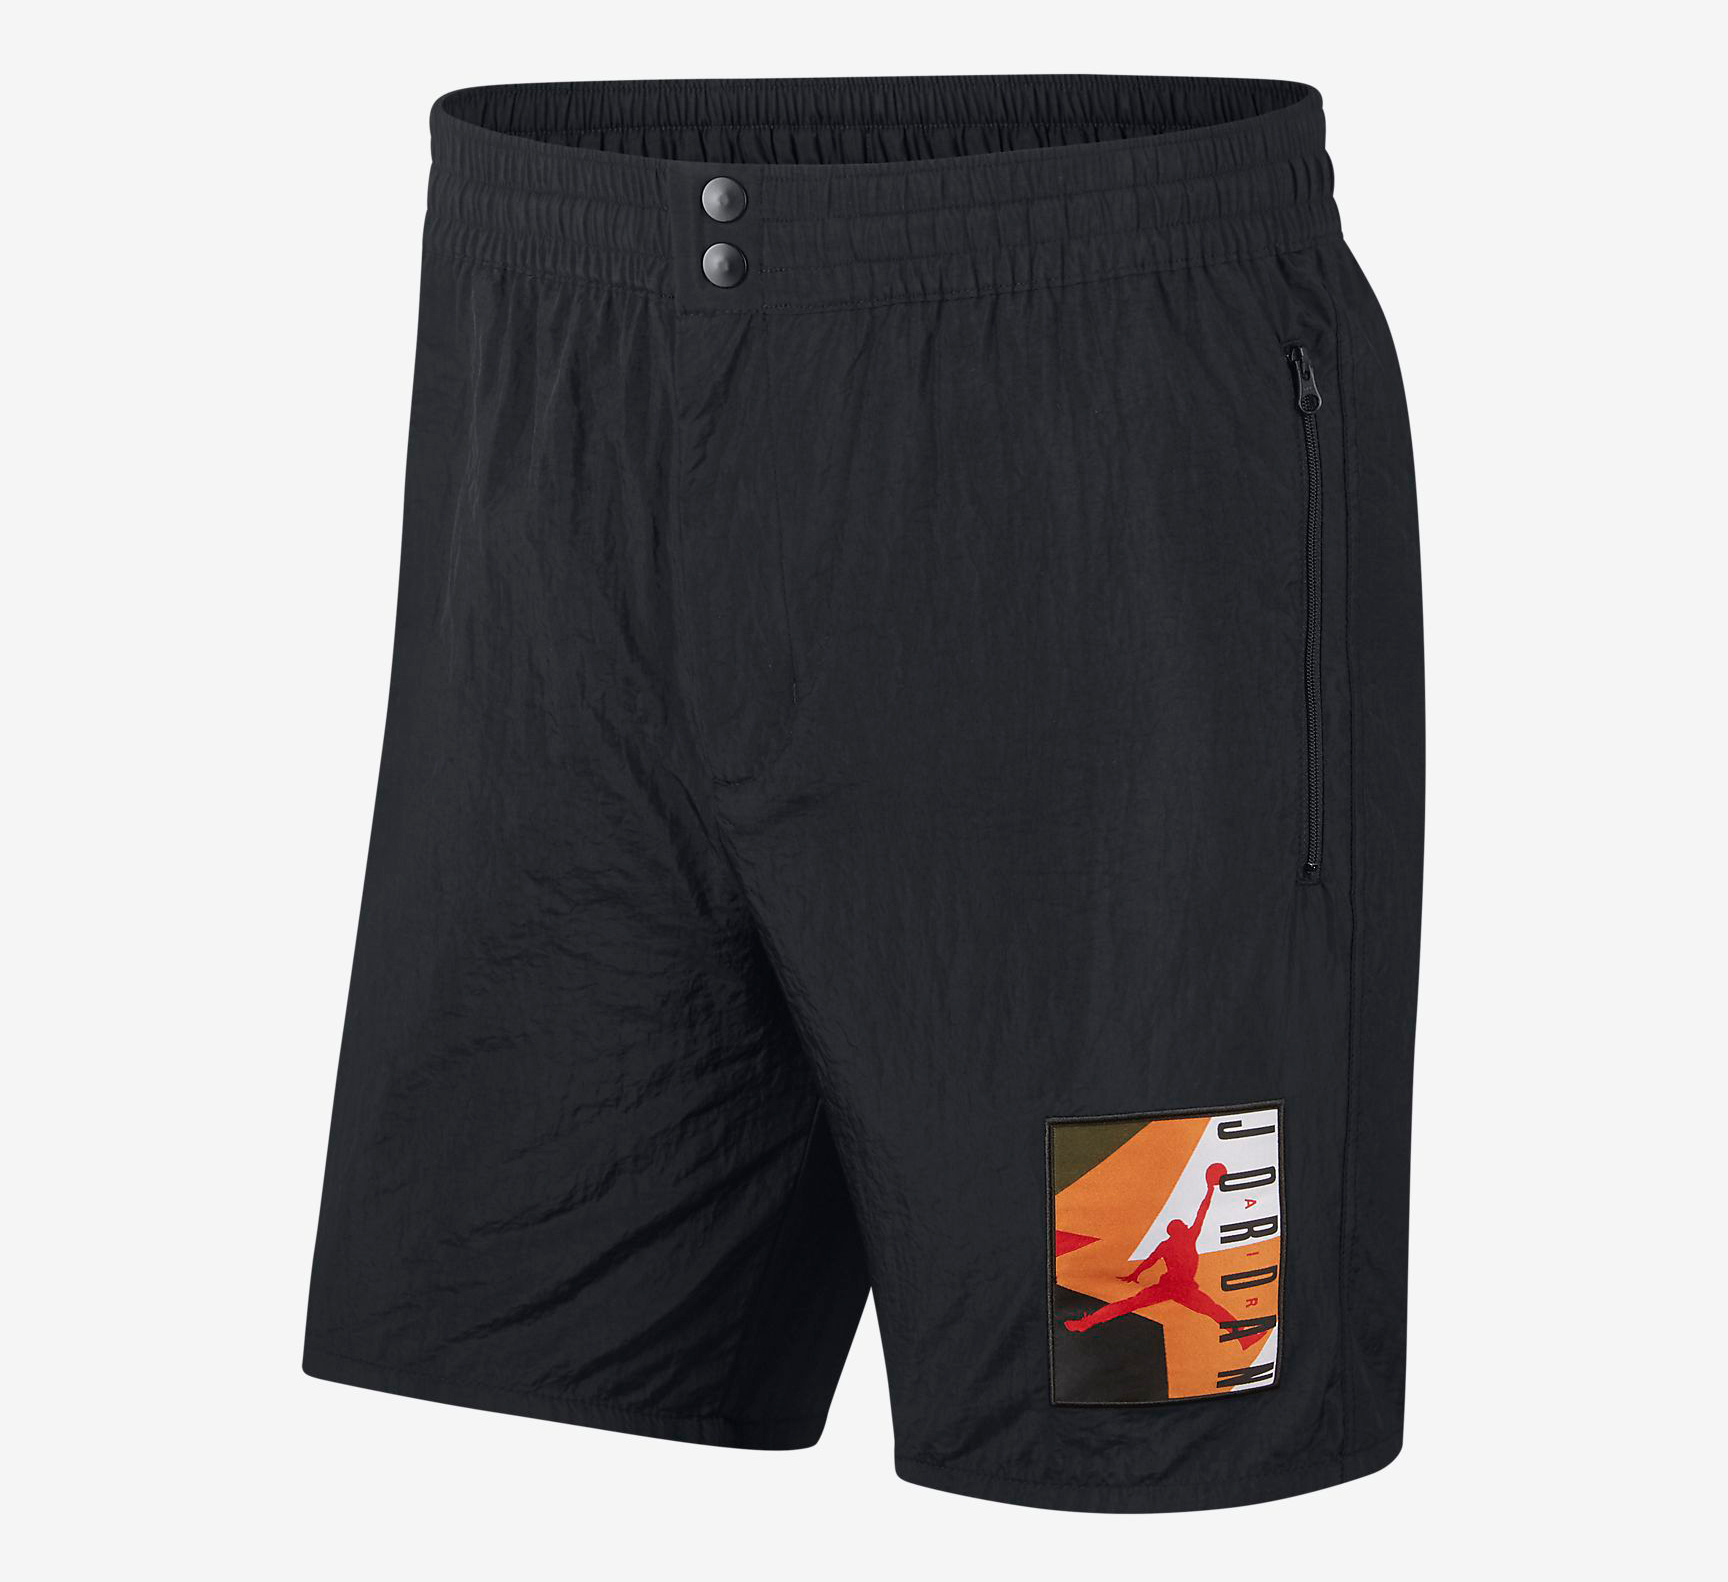 air-jordan-7-low-nrg-shorts-1